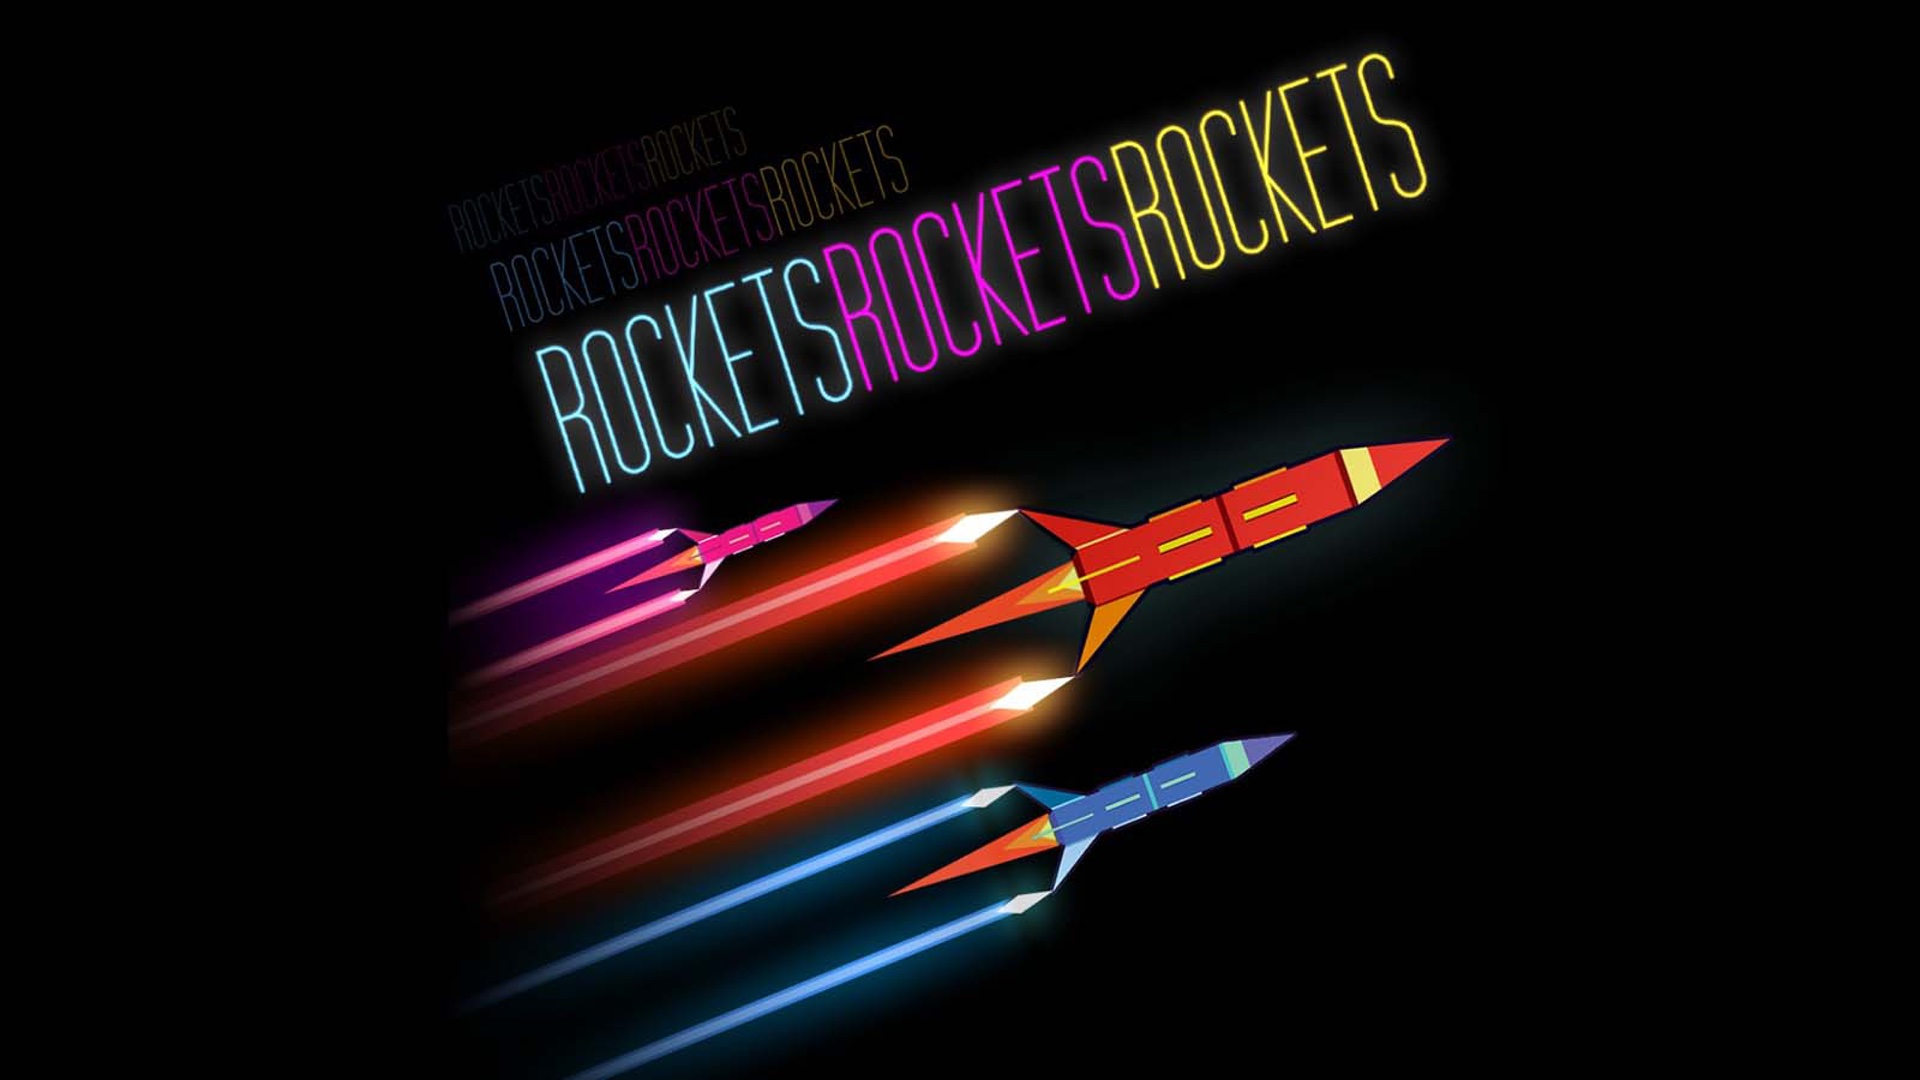 RocketsRocketsRockets – Nintendo Switch | Review